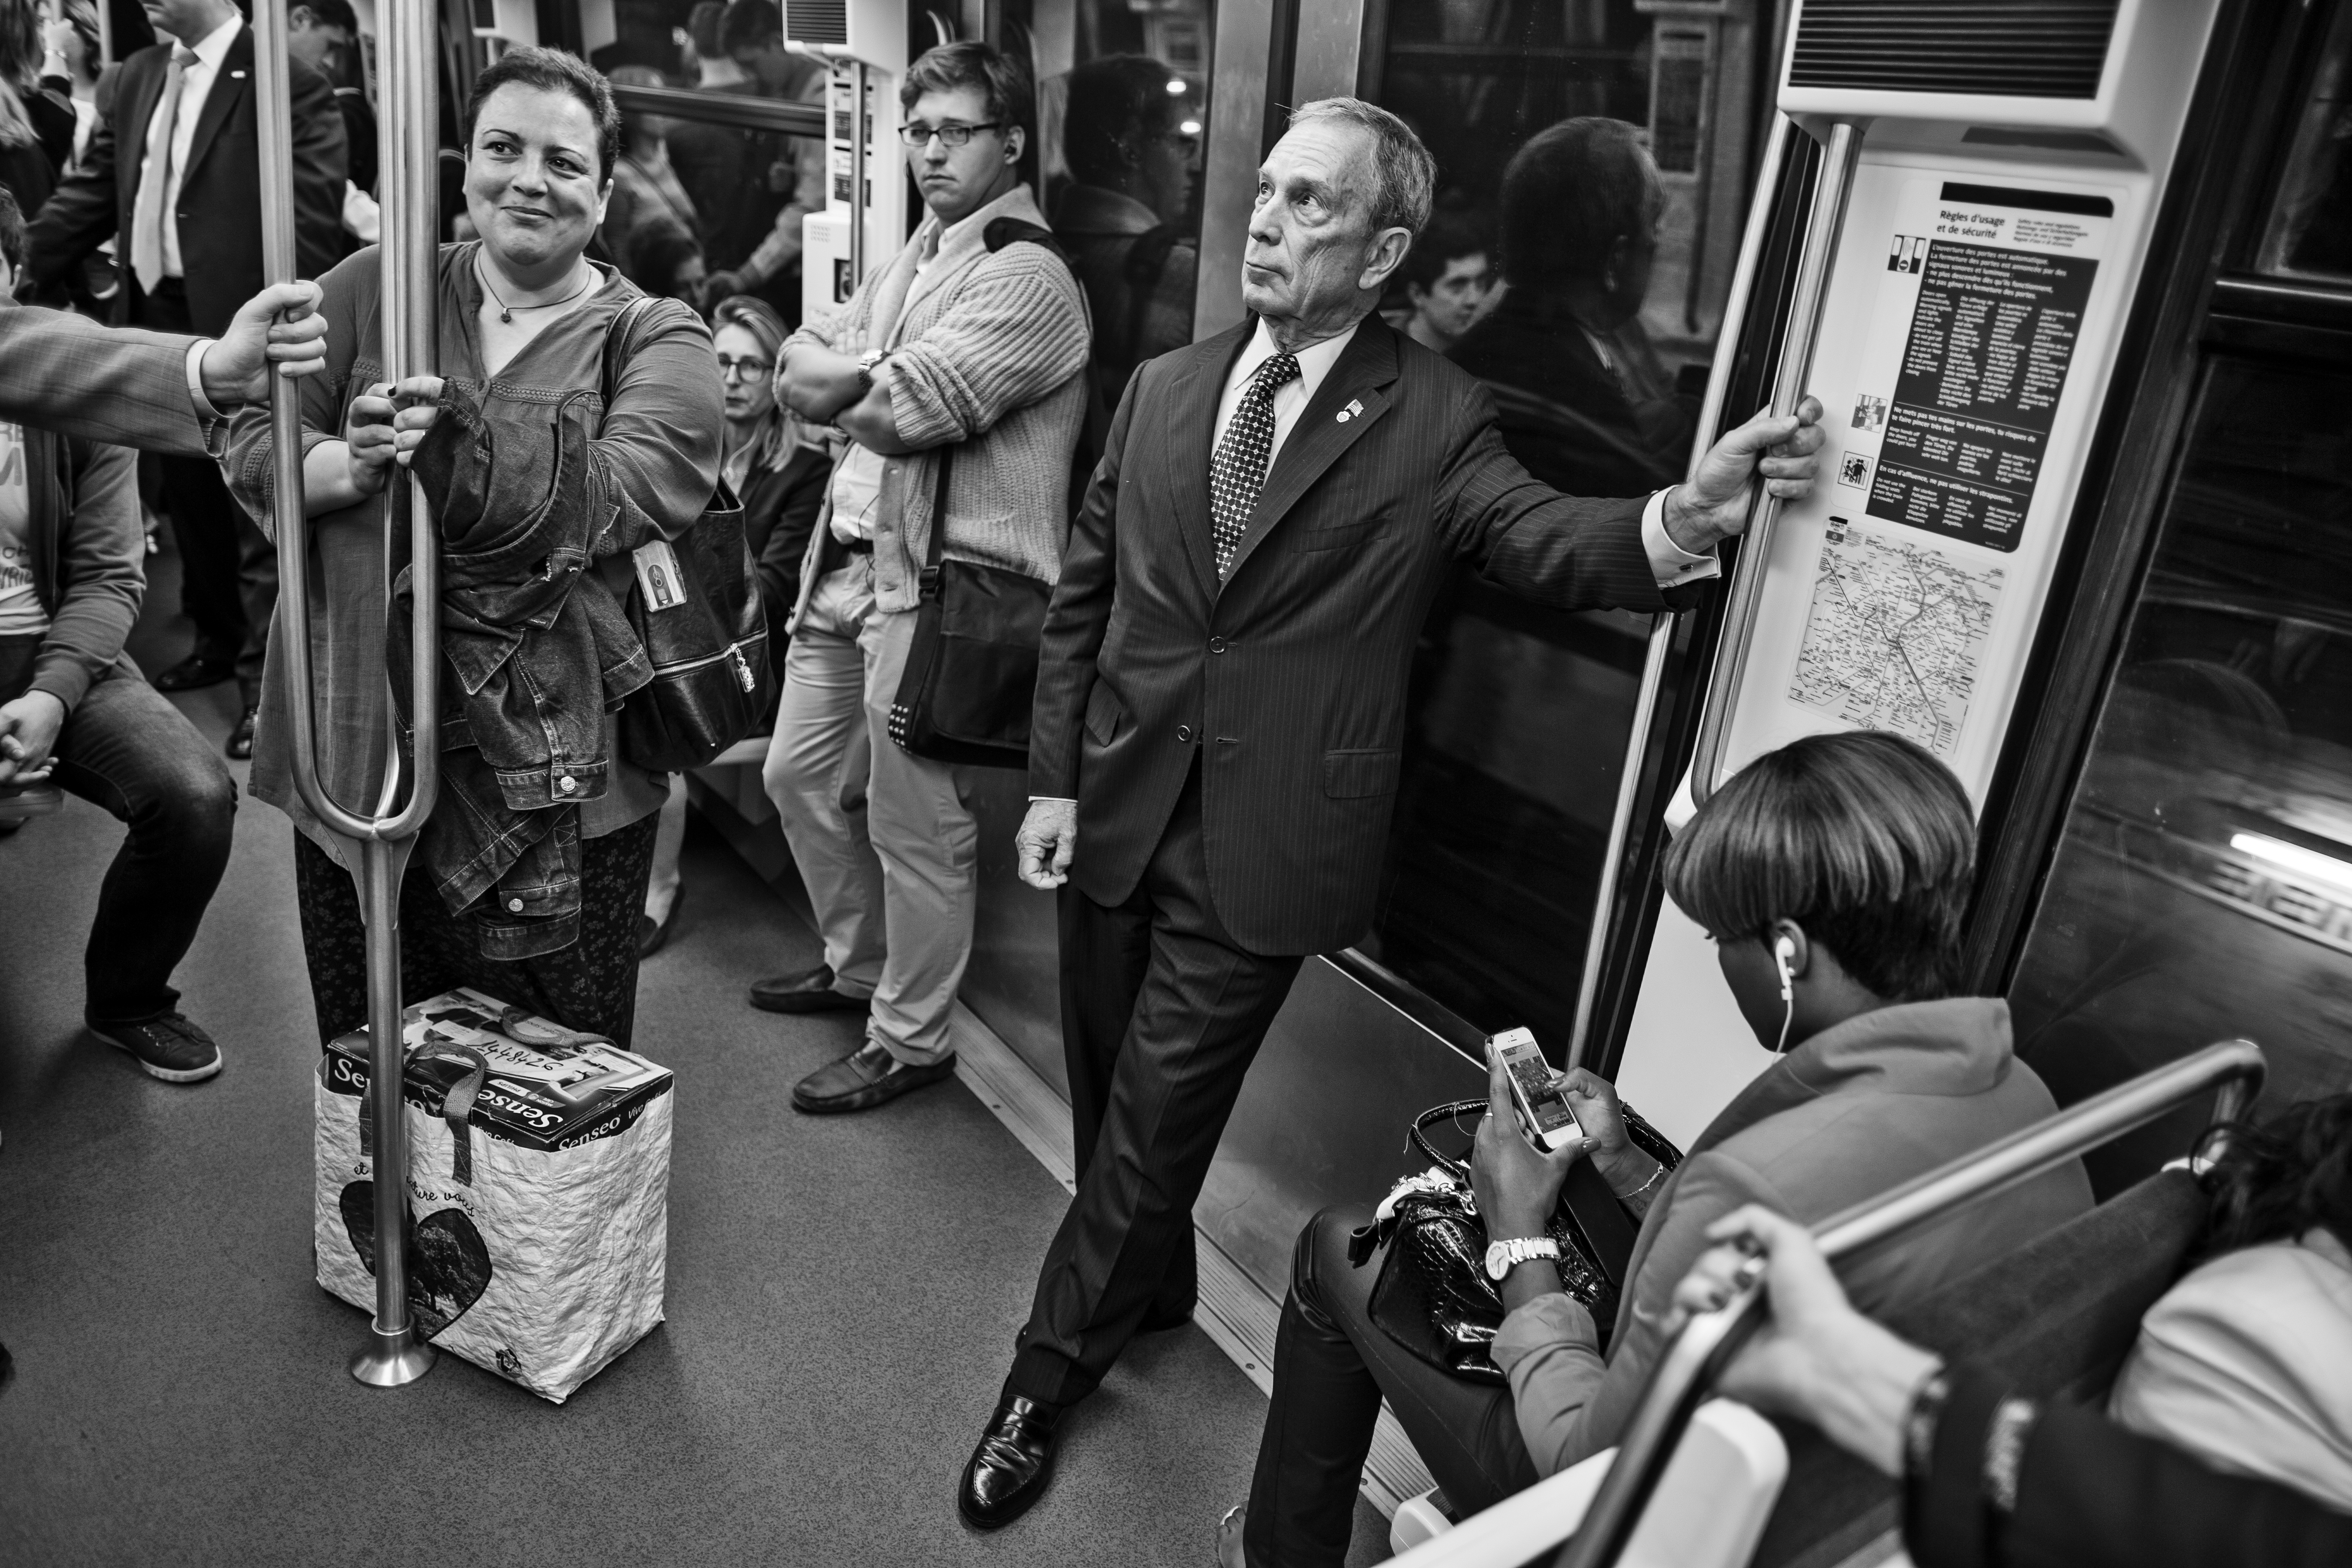 Bloomberg takes the Paris metro back to his hotel after finishing up his meetings for the day.